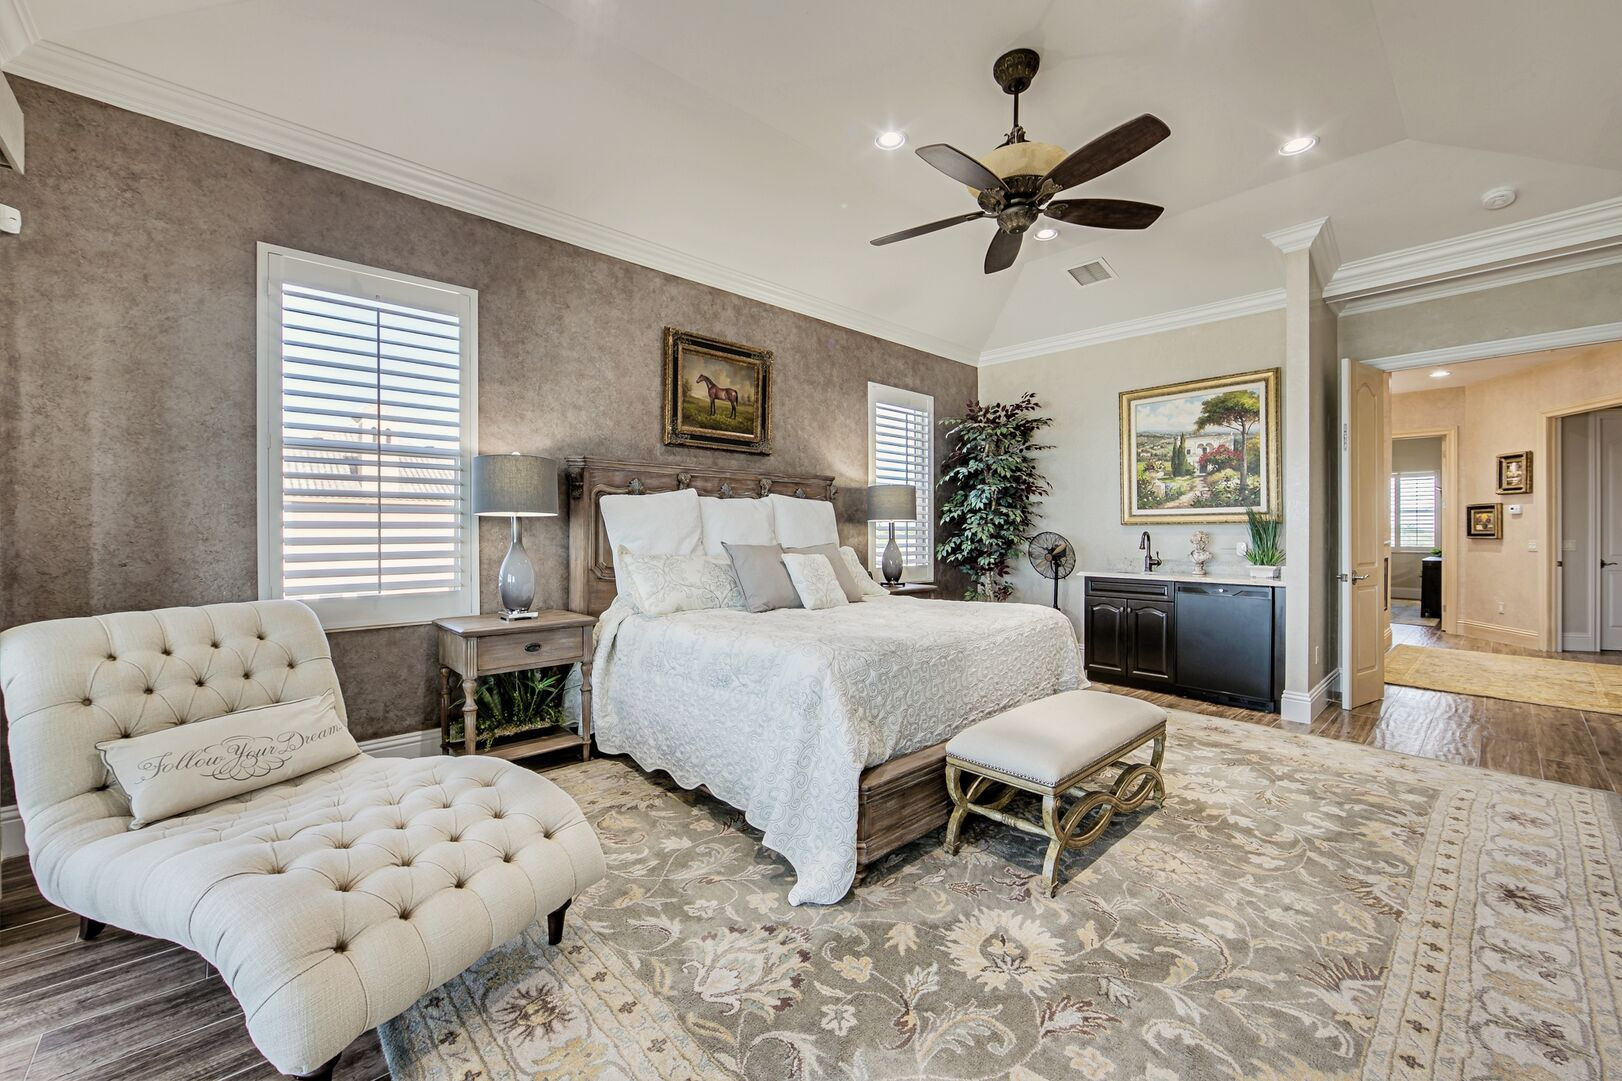 Large Bed, Chaise Lounge Sofa, Nightstands, Wet Bar, and Ceiling Fan.